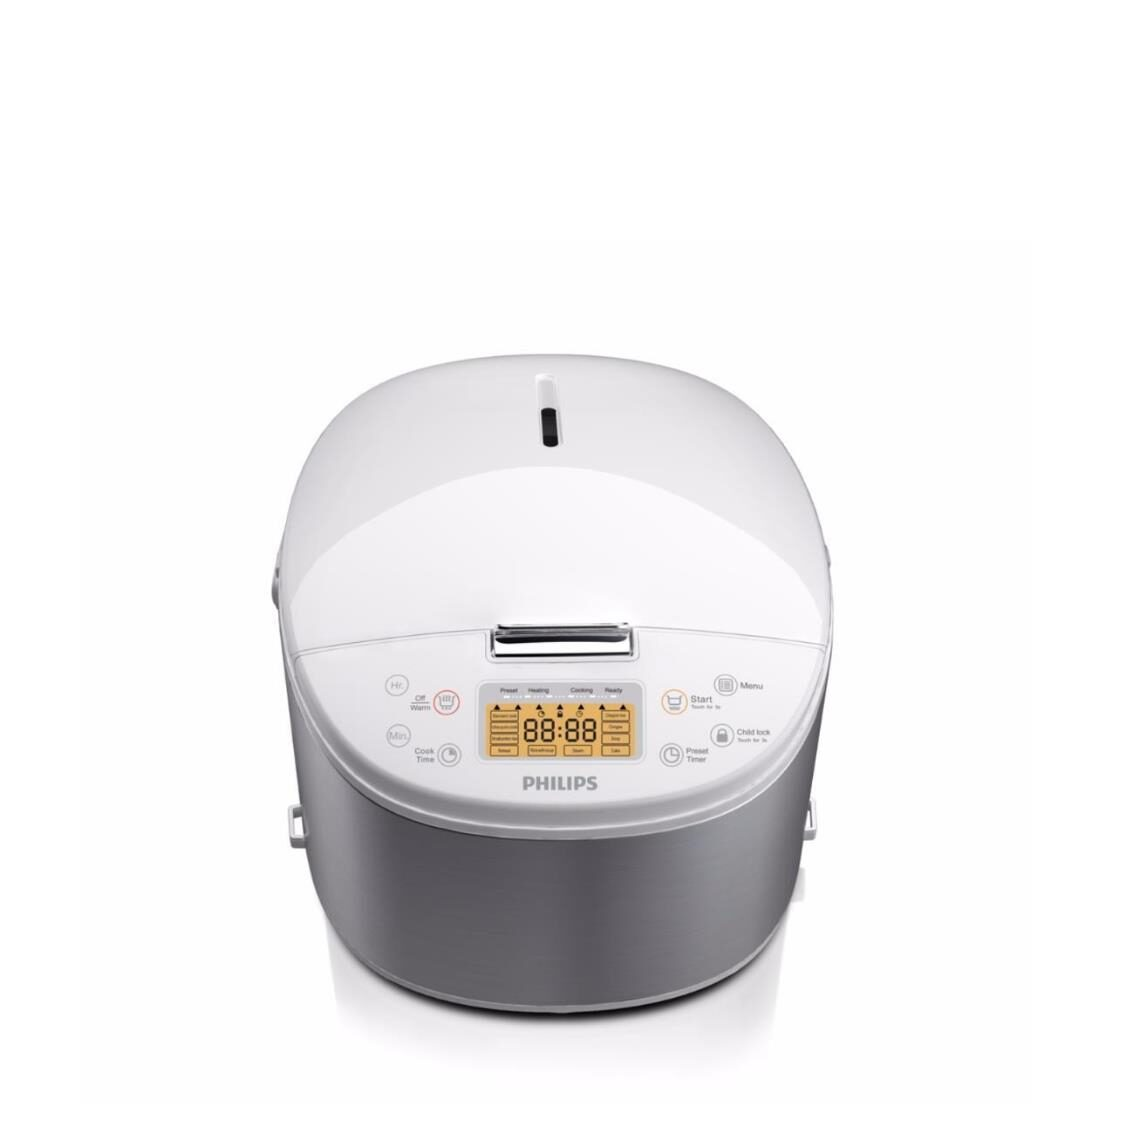 Philips Fuzzy Logic Rice Cooker